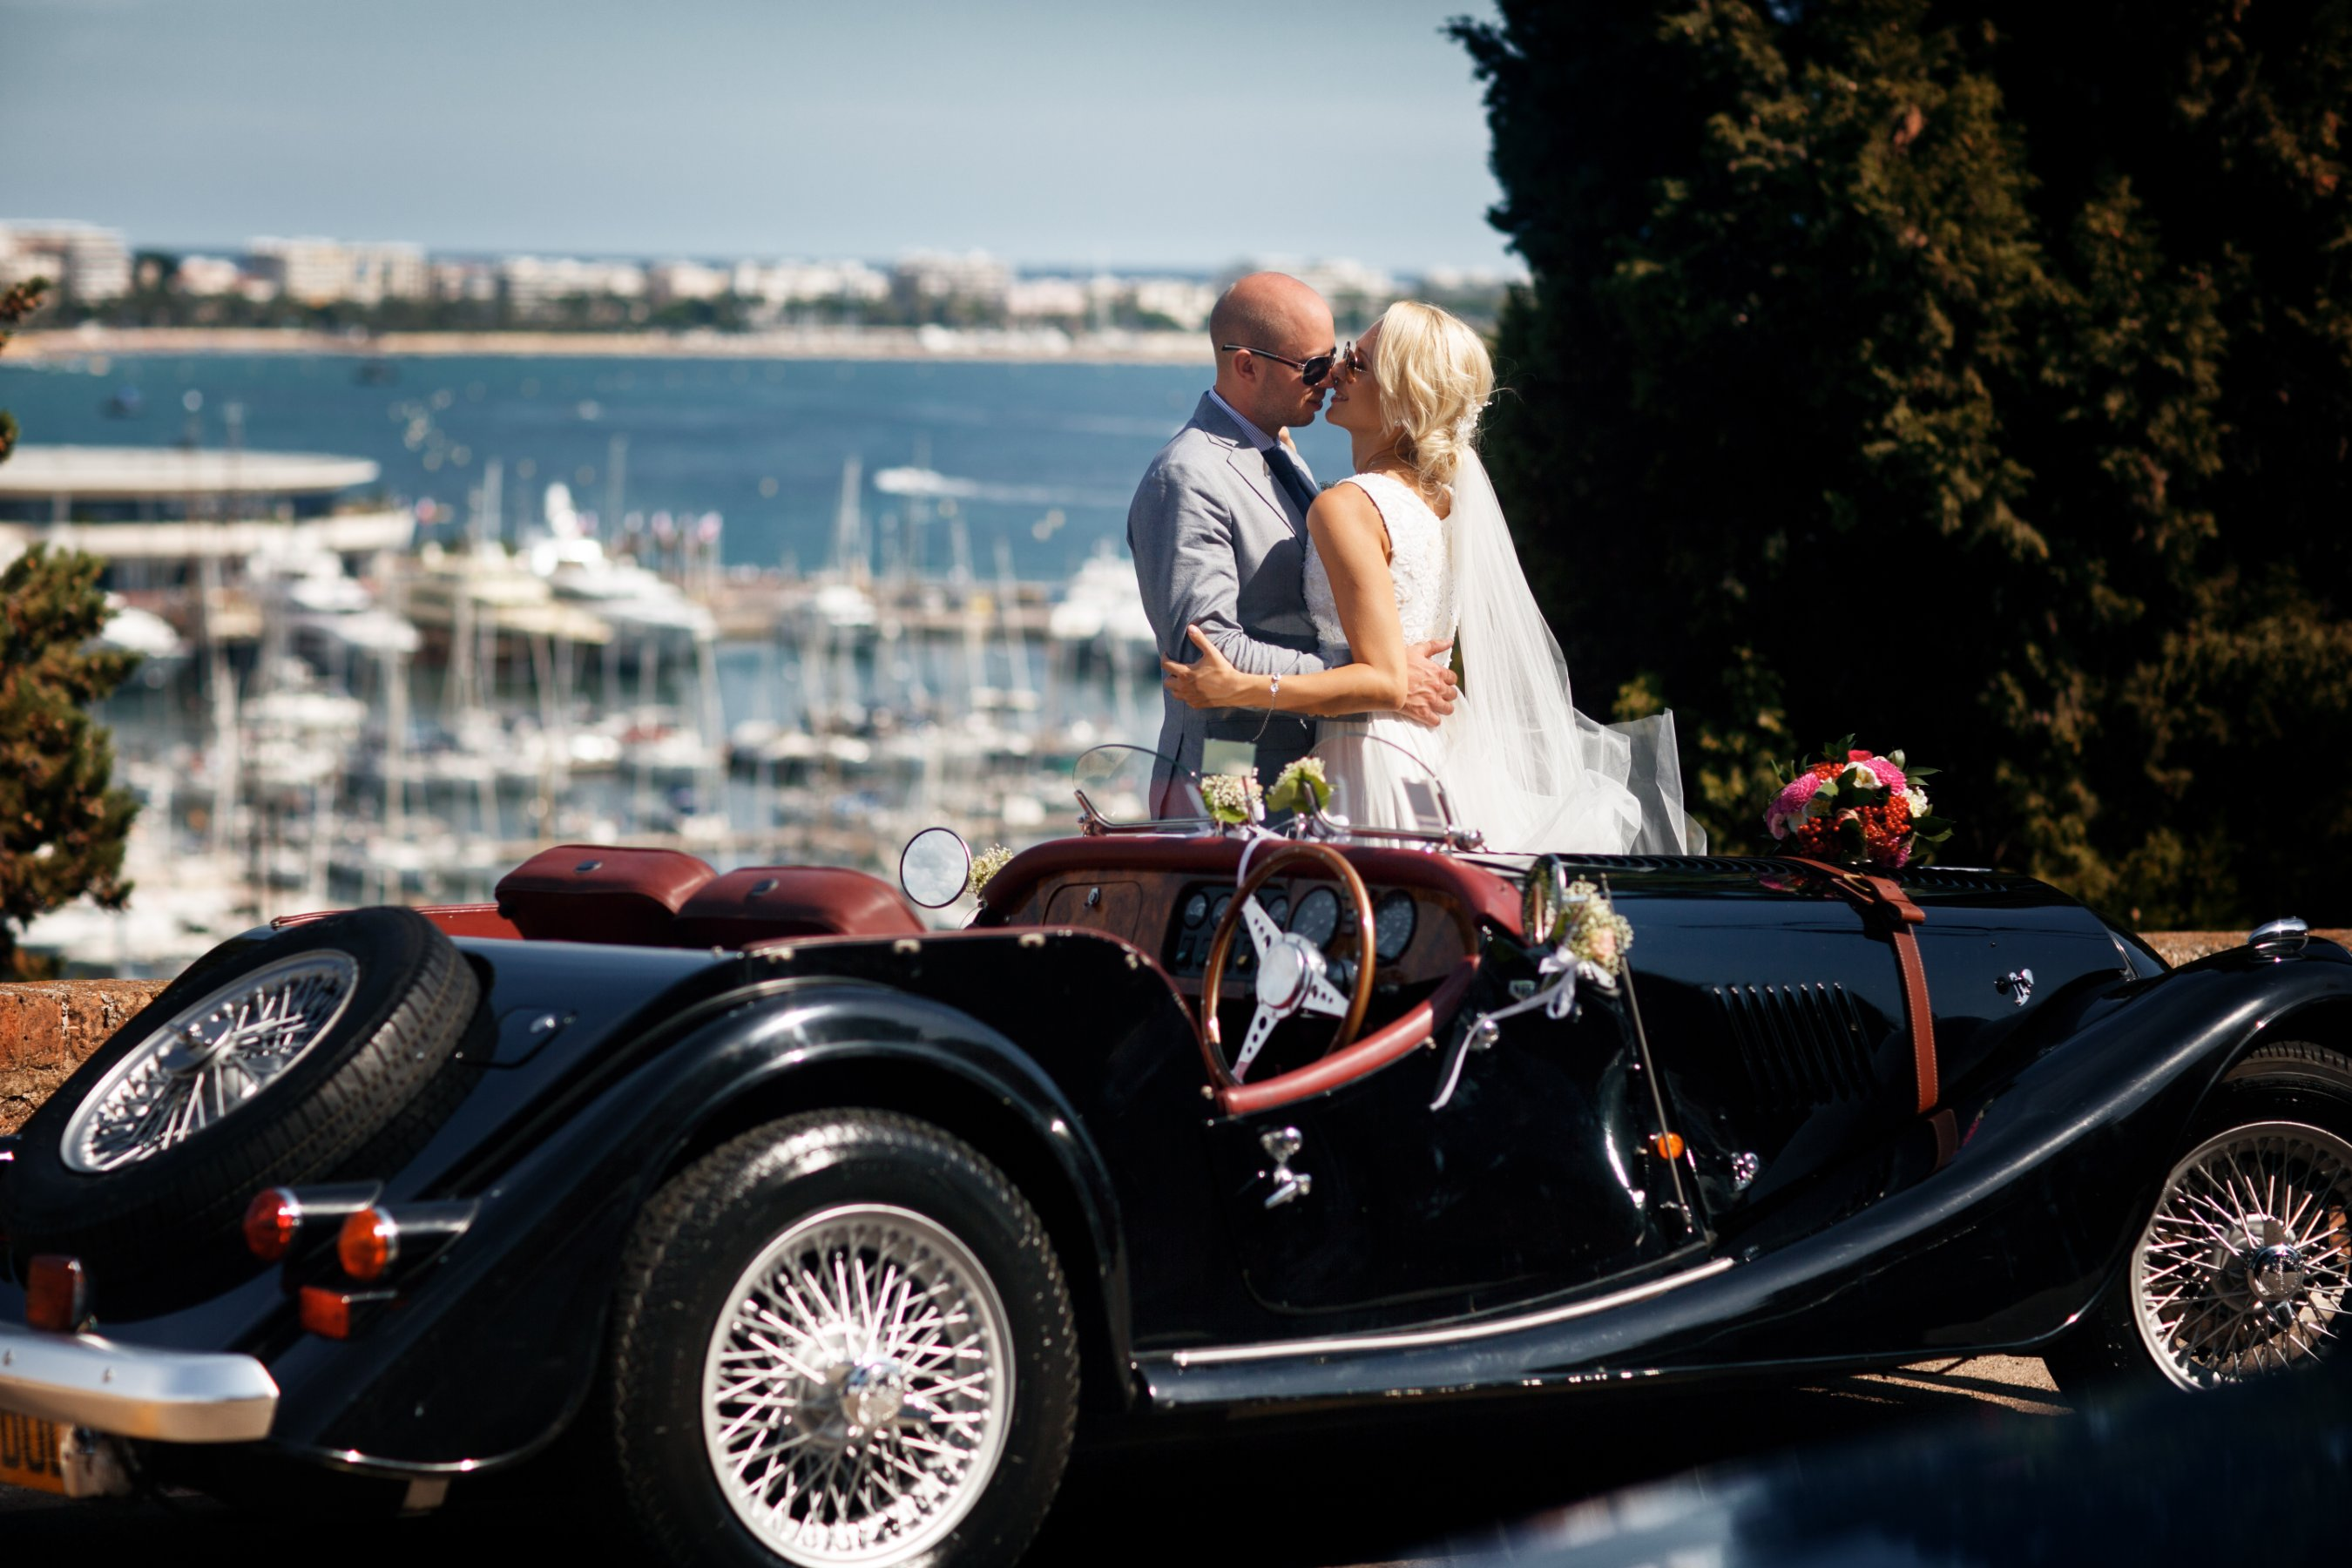 Cannes cars, Vespas, yachts: How to get around in style   CNN Travel